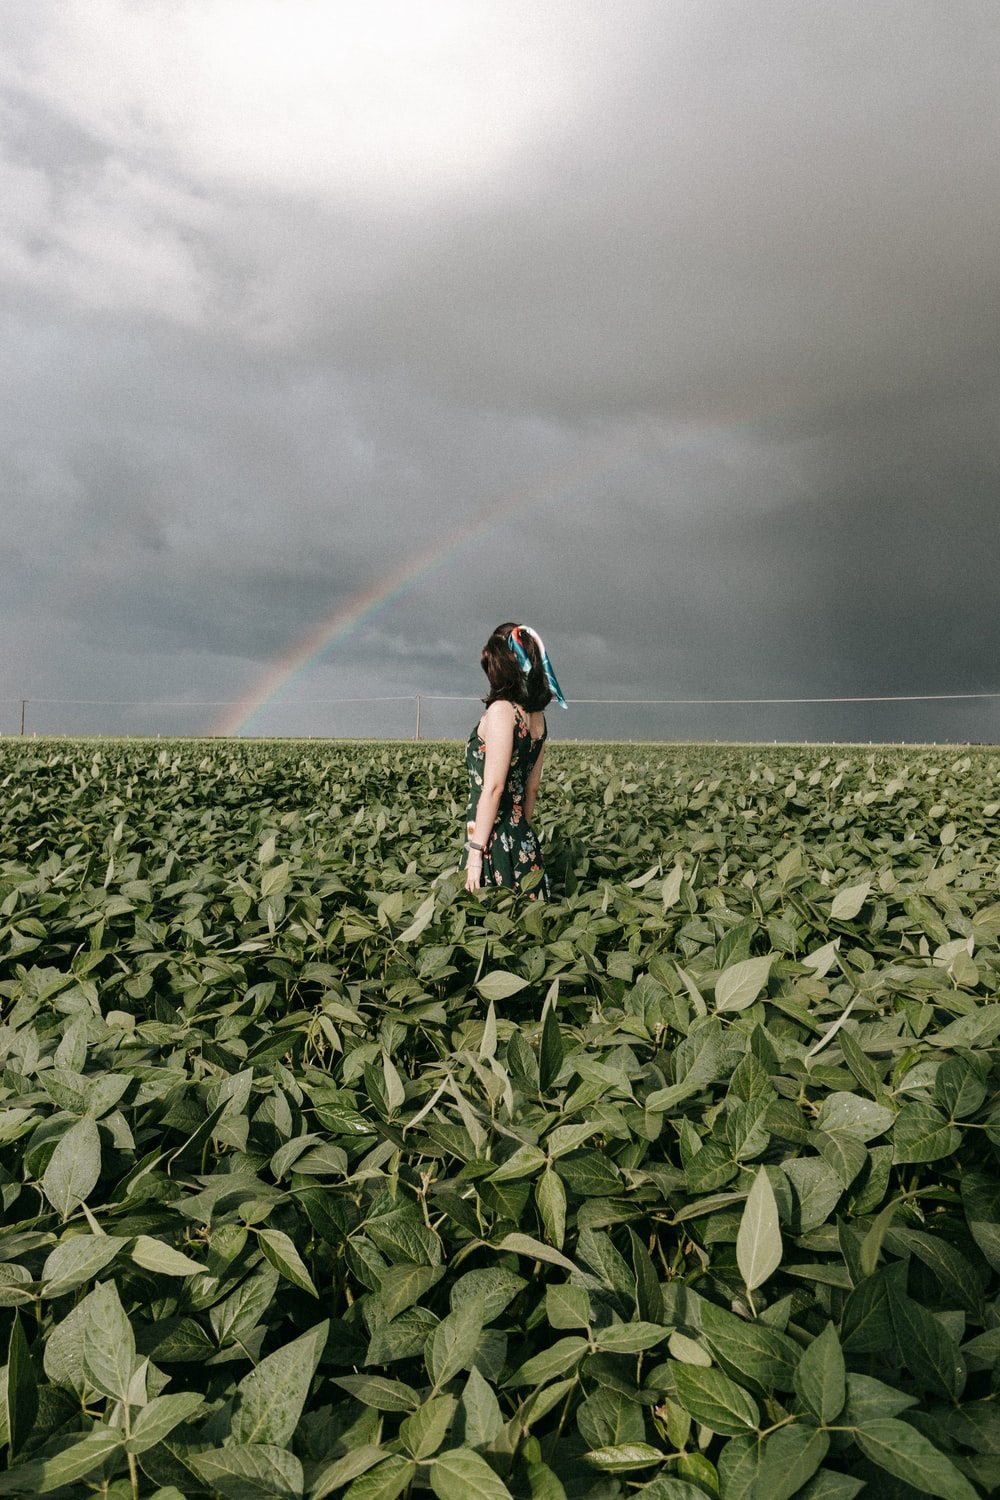 woman in black tank top and black shorts standing on green grass field under gray sky